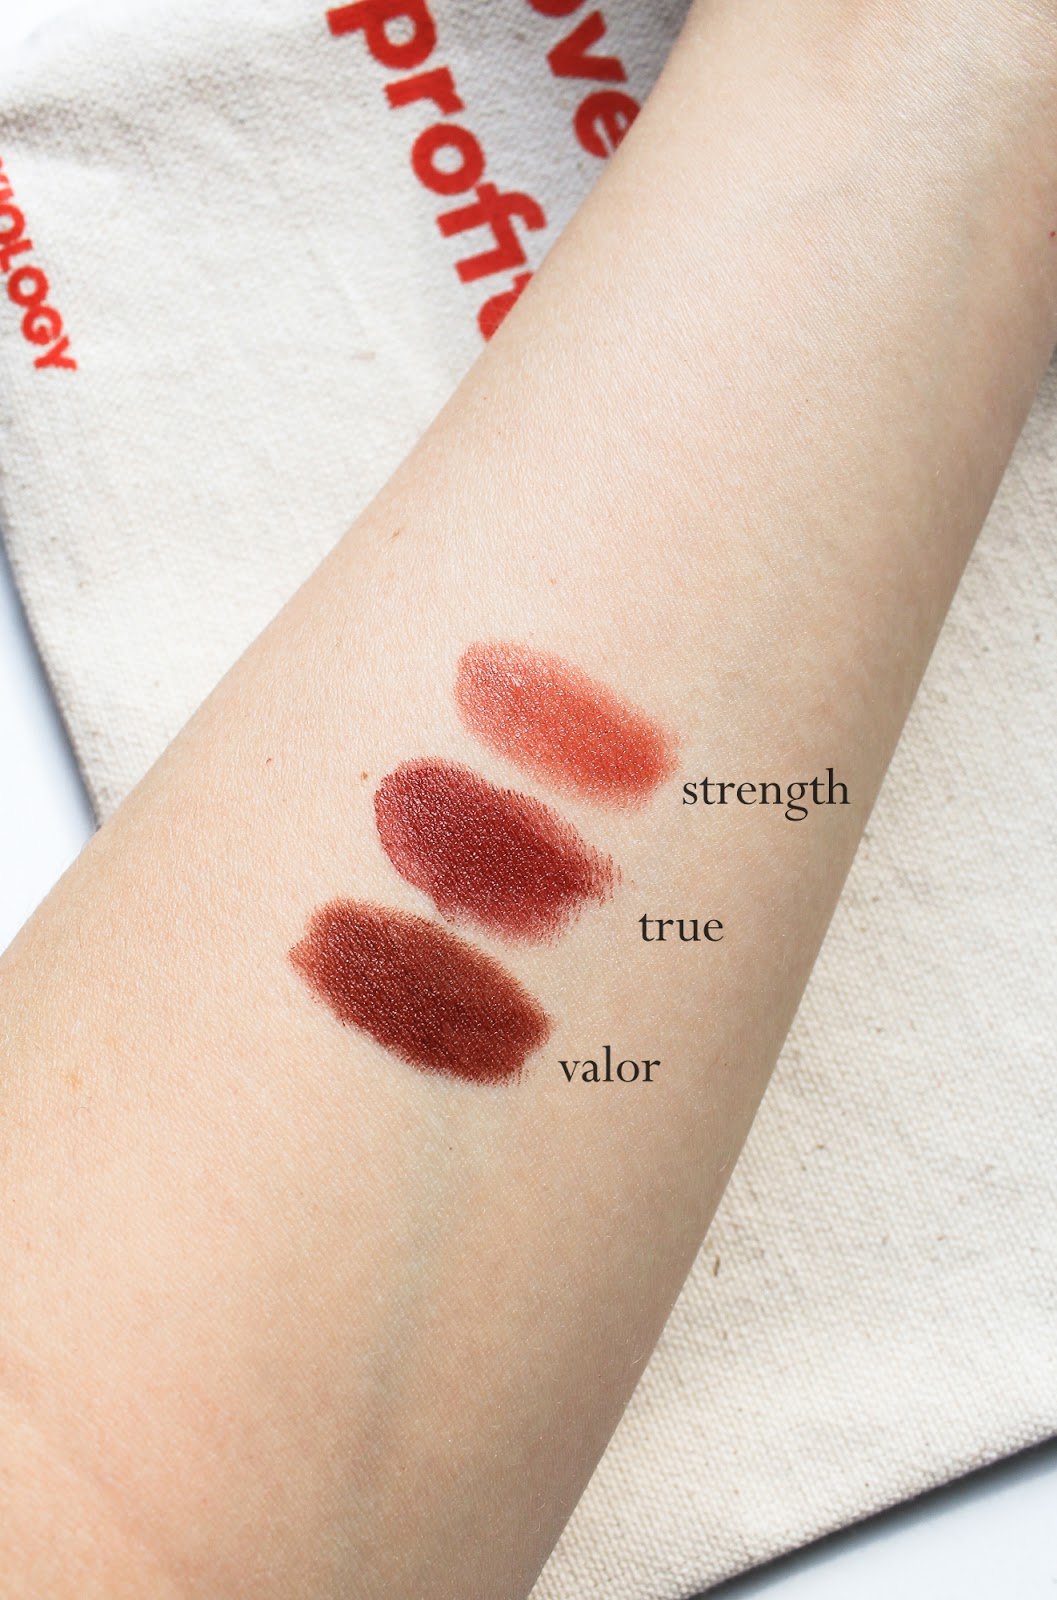 Axiology Limited Edition Makeup Discovery Spring Lip Collections Beauty Heroes. Vegan, palm oil free. Strength Sheer Balm Lipstick, True Rich Cream Lipstick, Valor Lip Crayon swatches